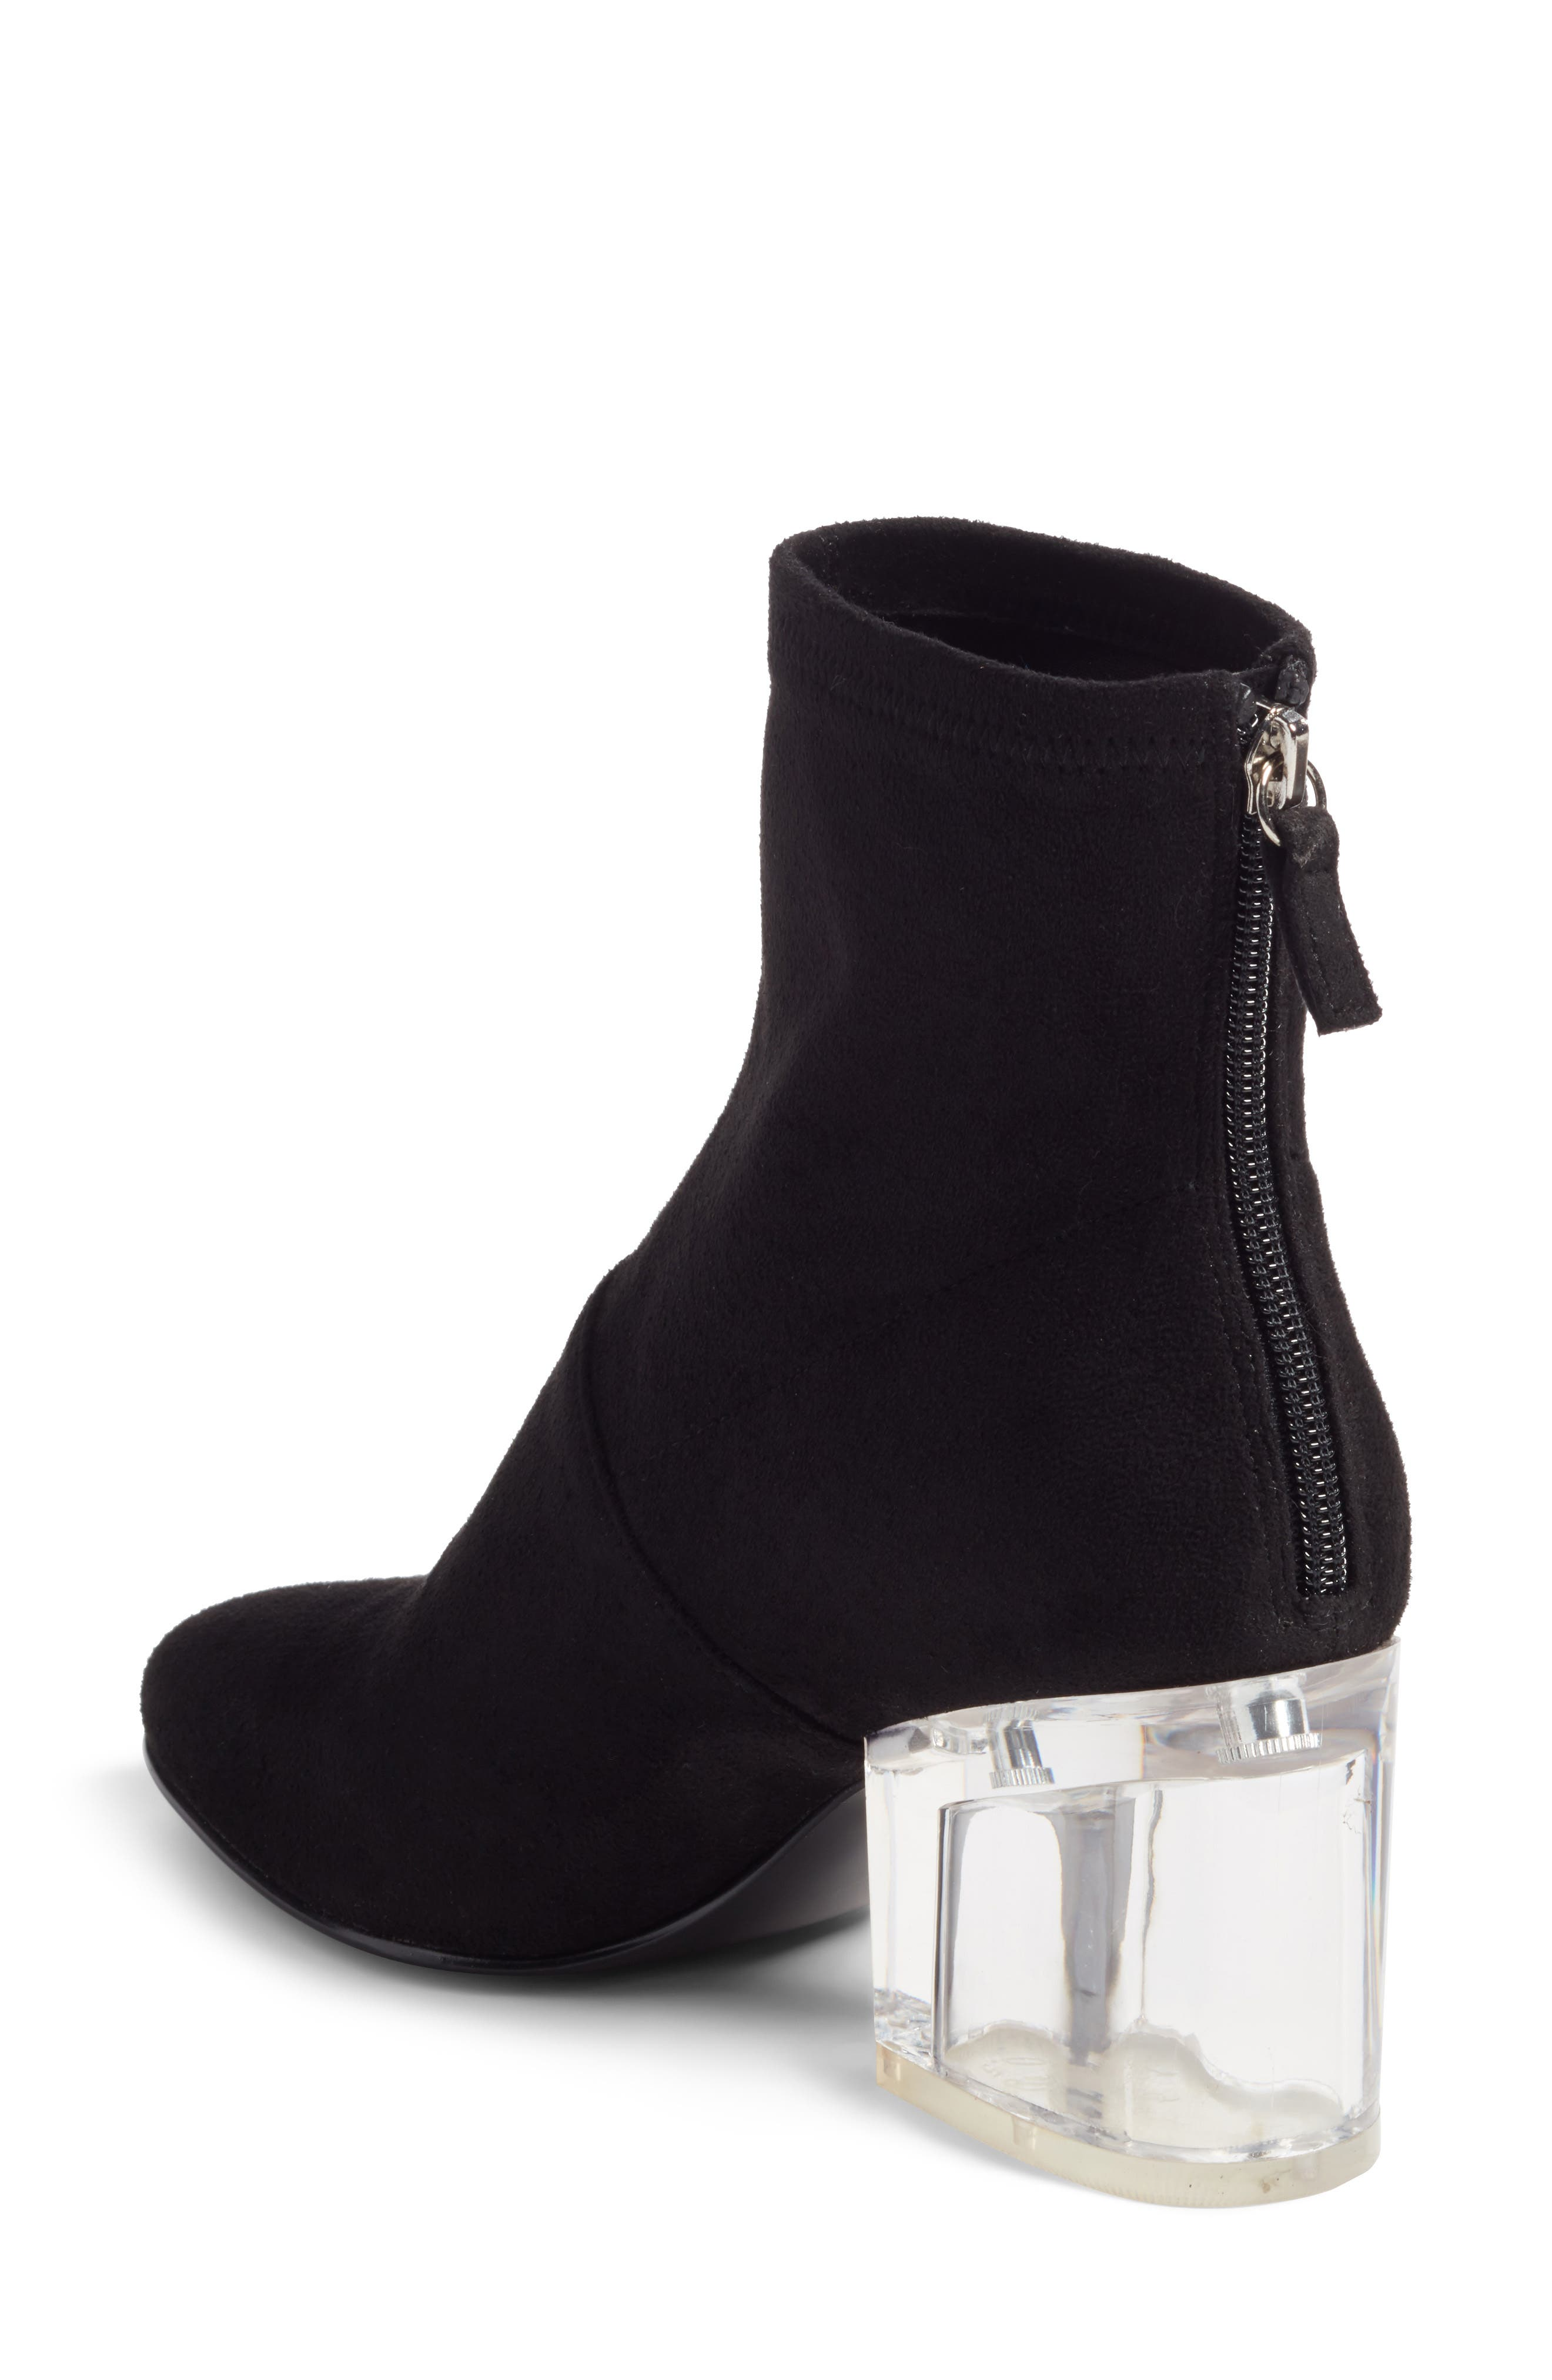 Lusty Statement Heel Bootie,                             Alternate thumbnail 2, color,                             Black